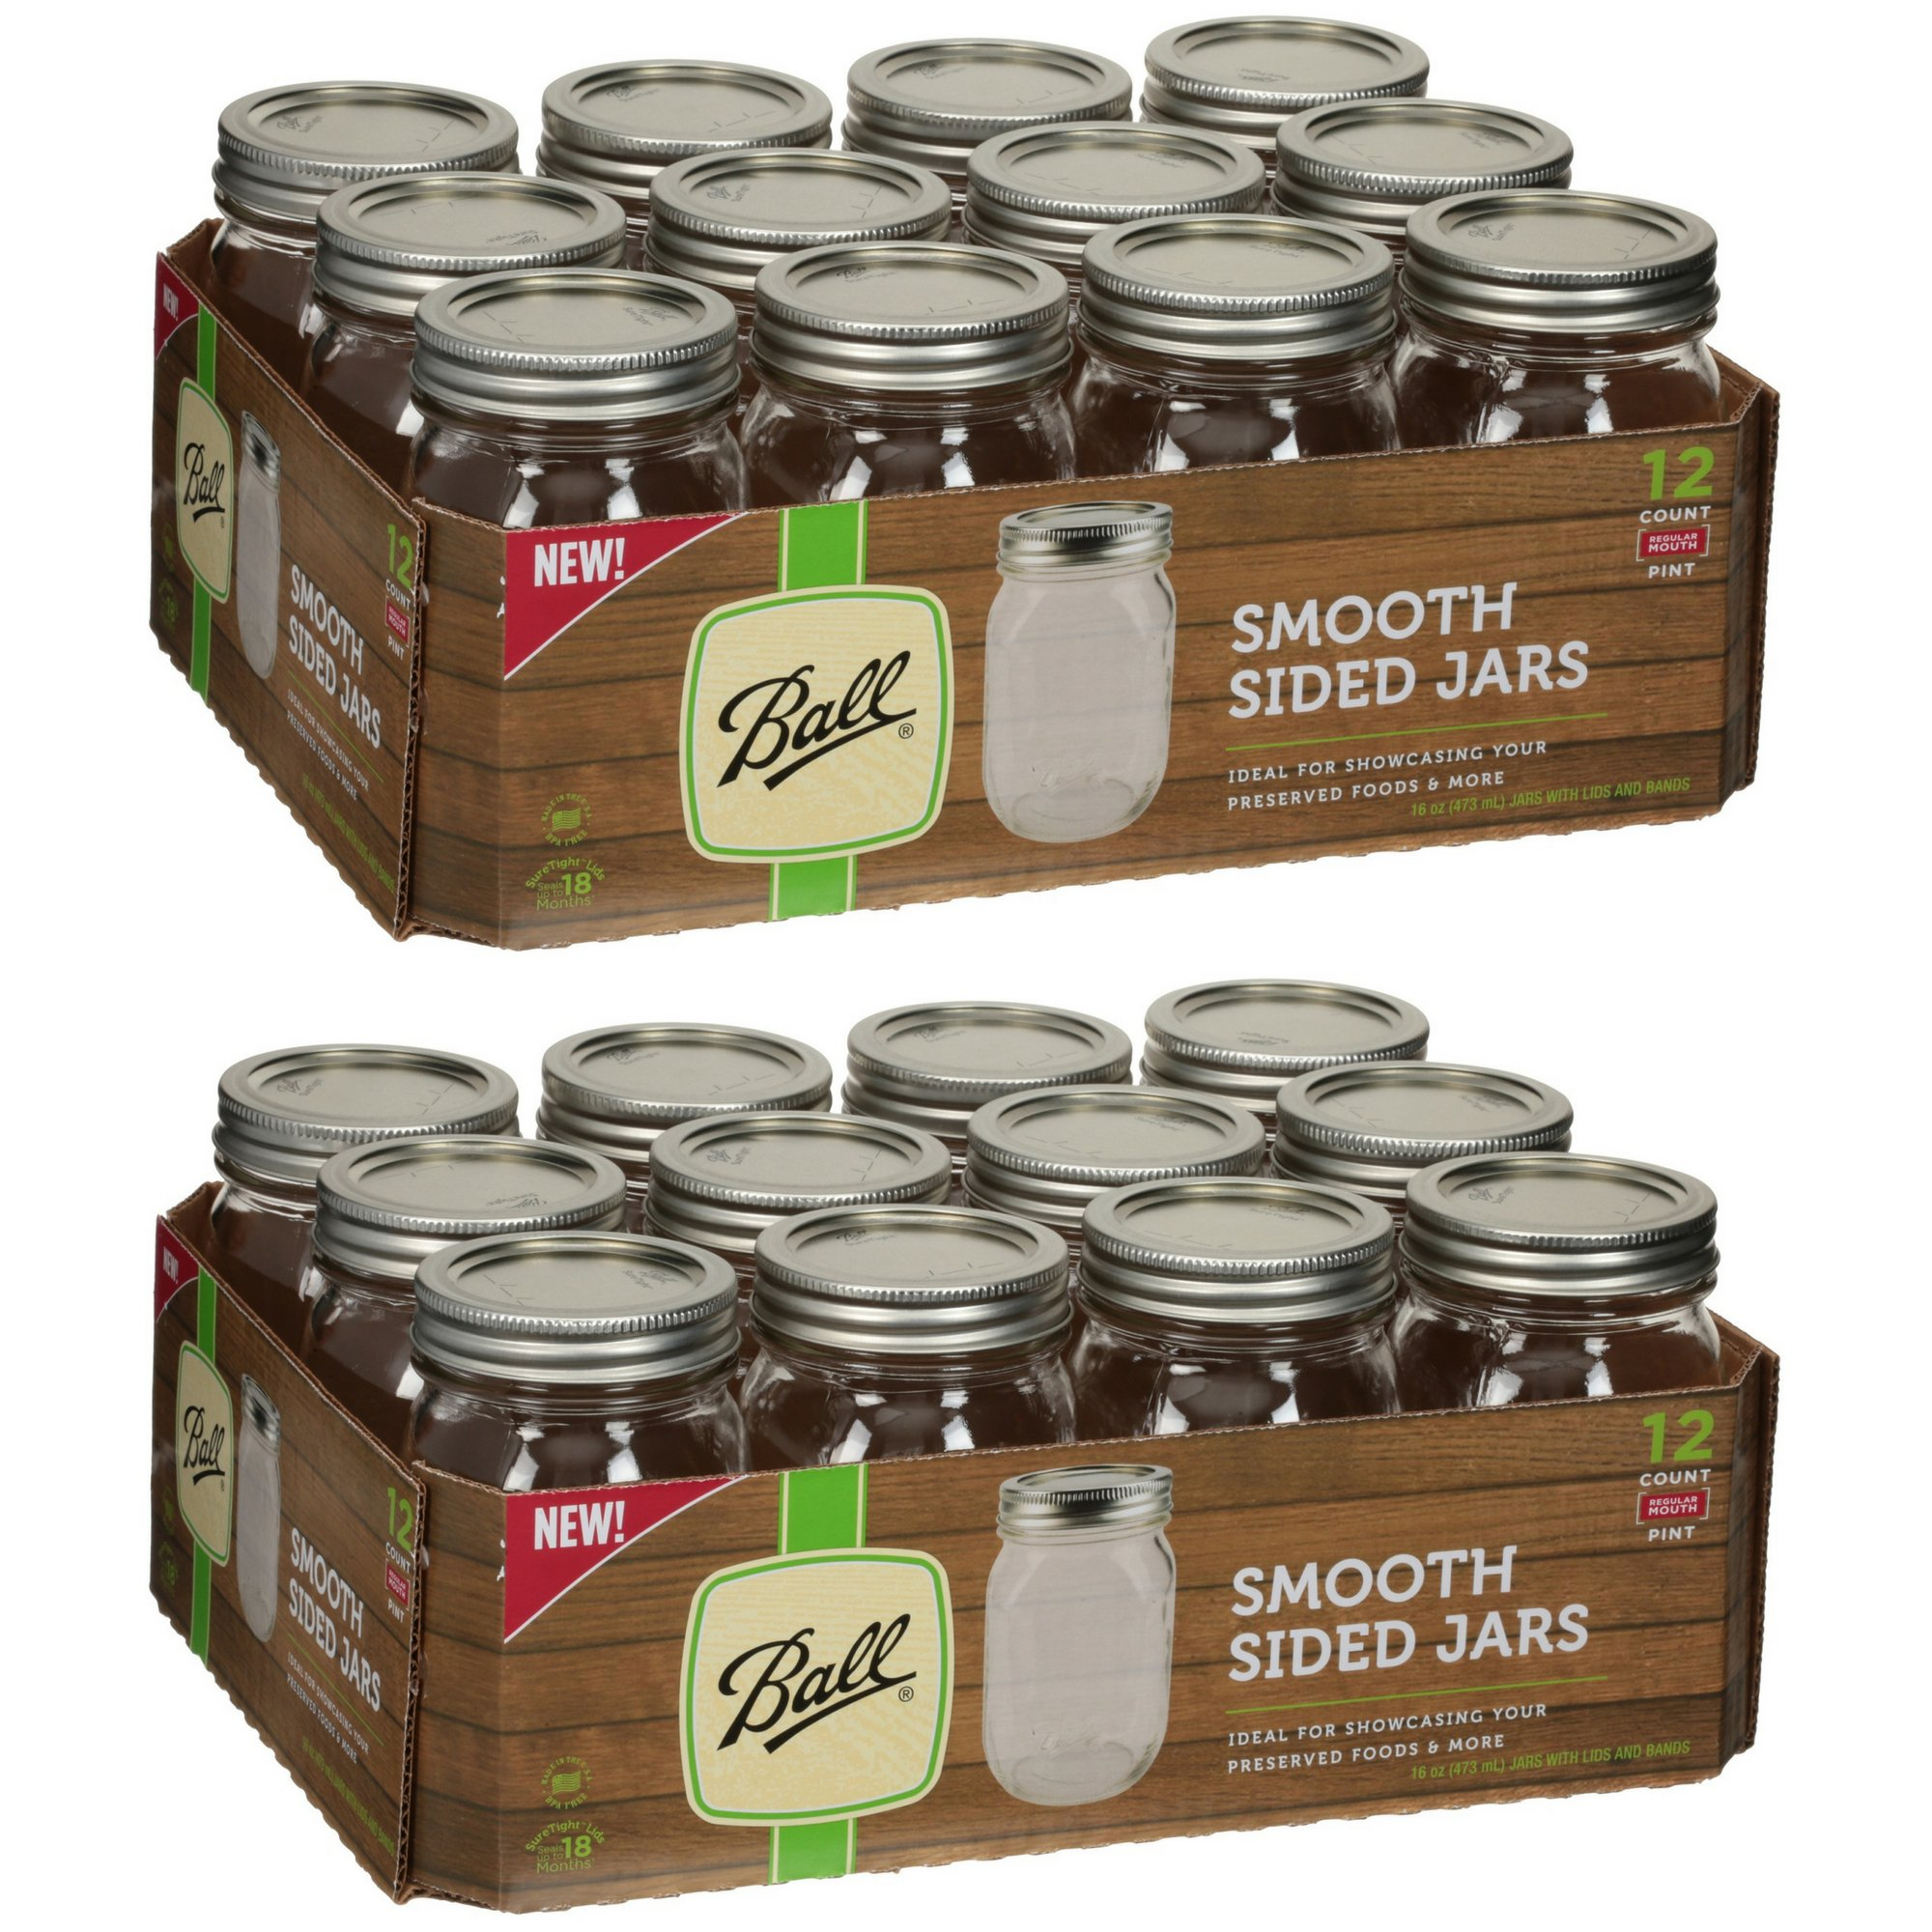 Ball Regular Mouth Pint Jars 12 Count (16 OZ) Made in USA Brand New and Fast Shipping (2 Pack)